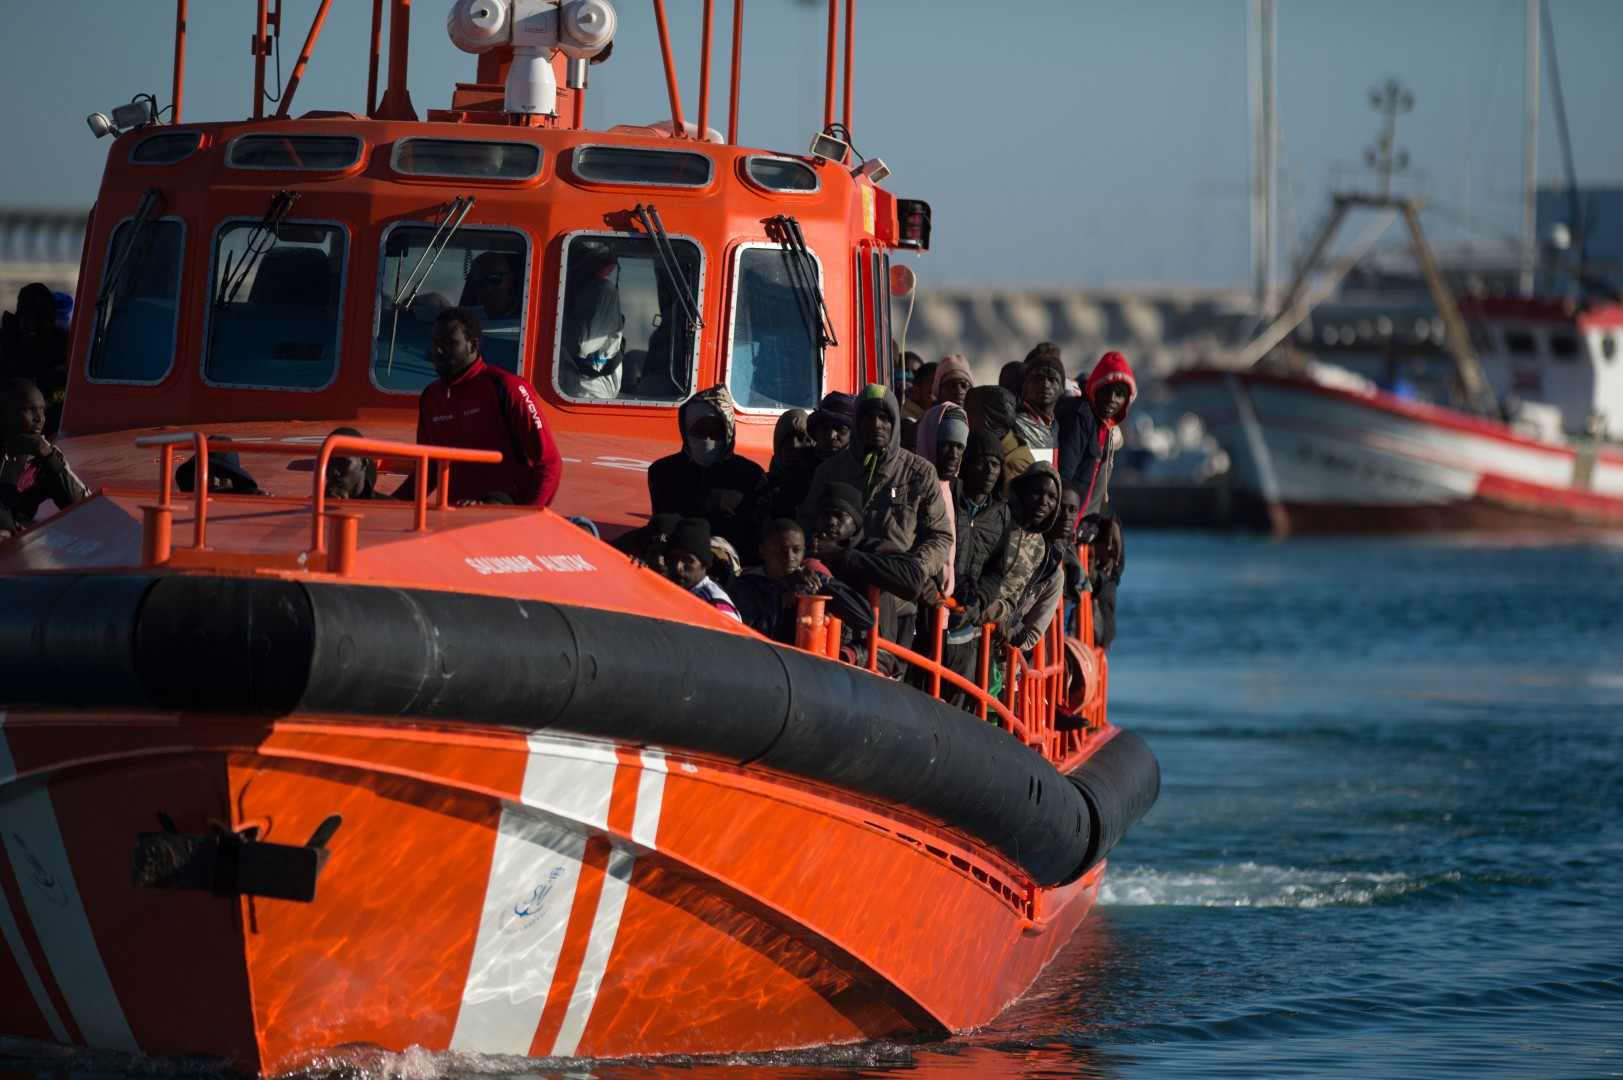 A Spanish coast guard boat with migrants onboard arrives at Malaga's harbour on December 10, 2018, after an inflatable boat carrying 118 migrants was rescued by the Spanish coast guard off the Spanish coast. (Photo by JORGE GUERRERO / AFP)